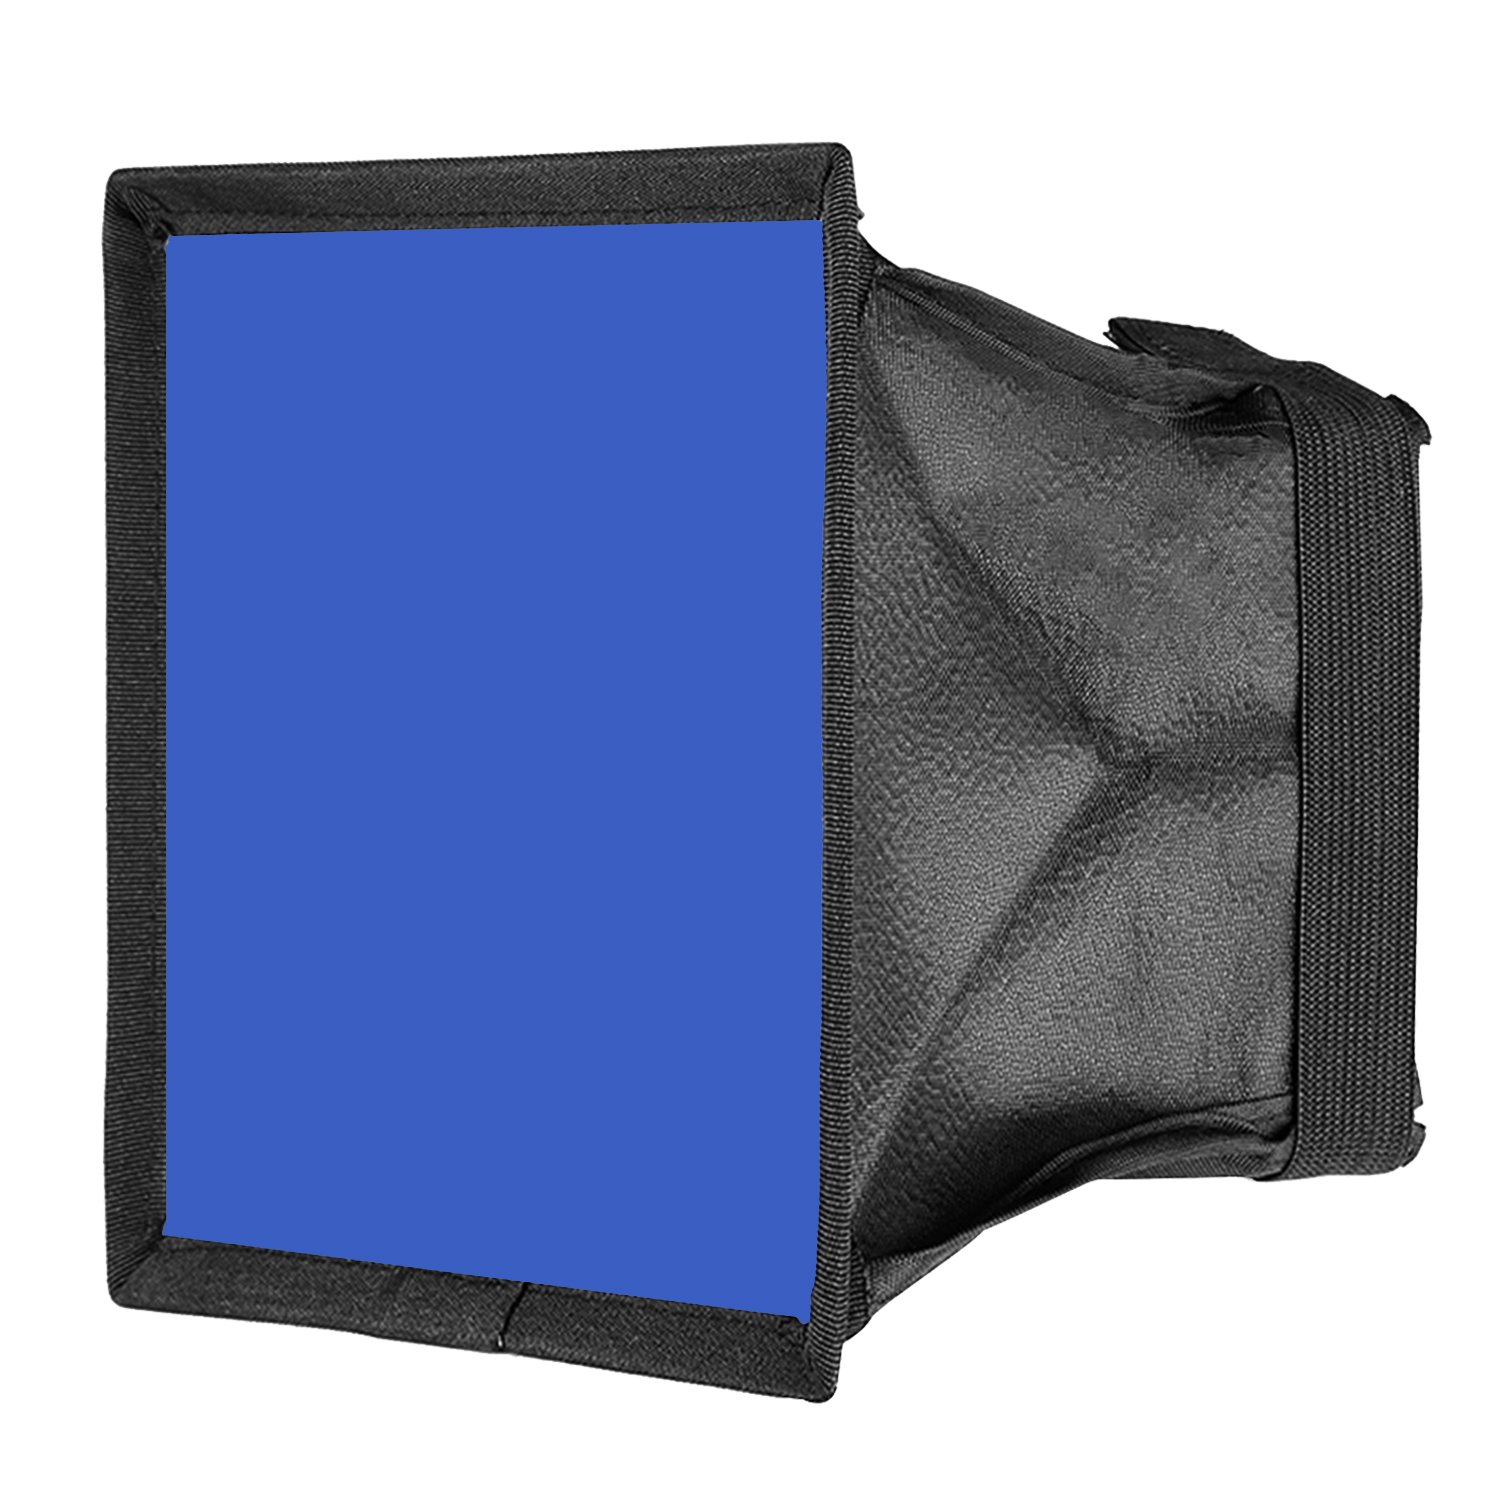 Neewer 5.9x6.7 inches/15x17 Centimeters Camera Collapsible Diffuser Mini Softbox for CN-160, CN-126 and CN-216 LED Light (Blue)